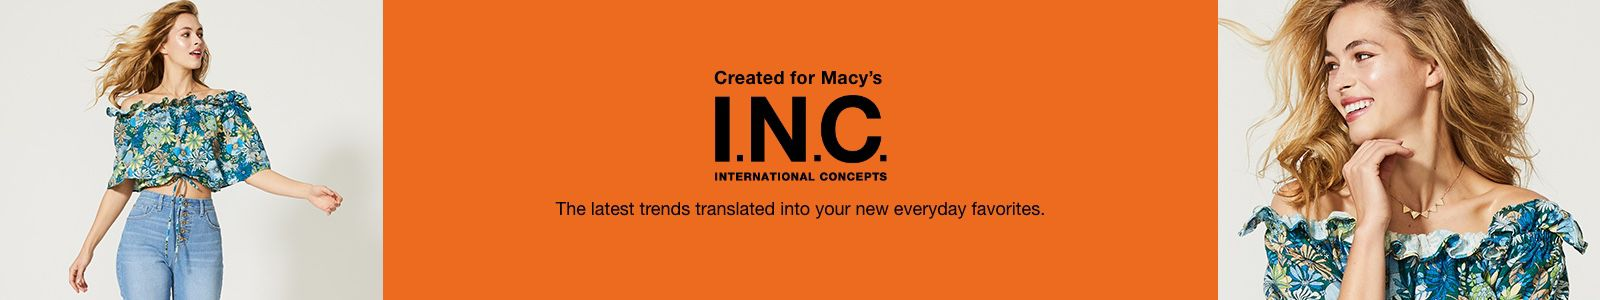 Created for Macy's, I.N.C International Concepts